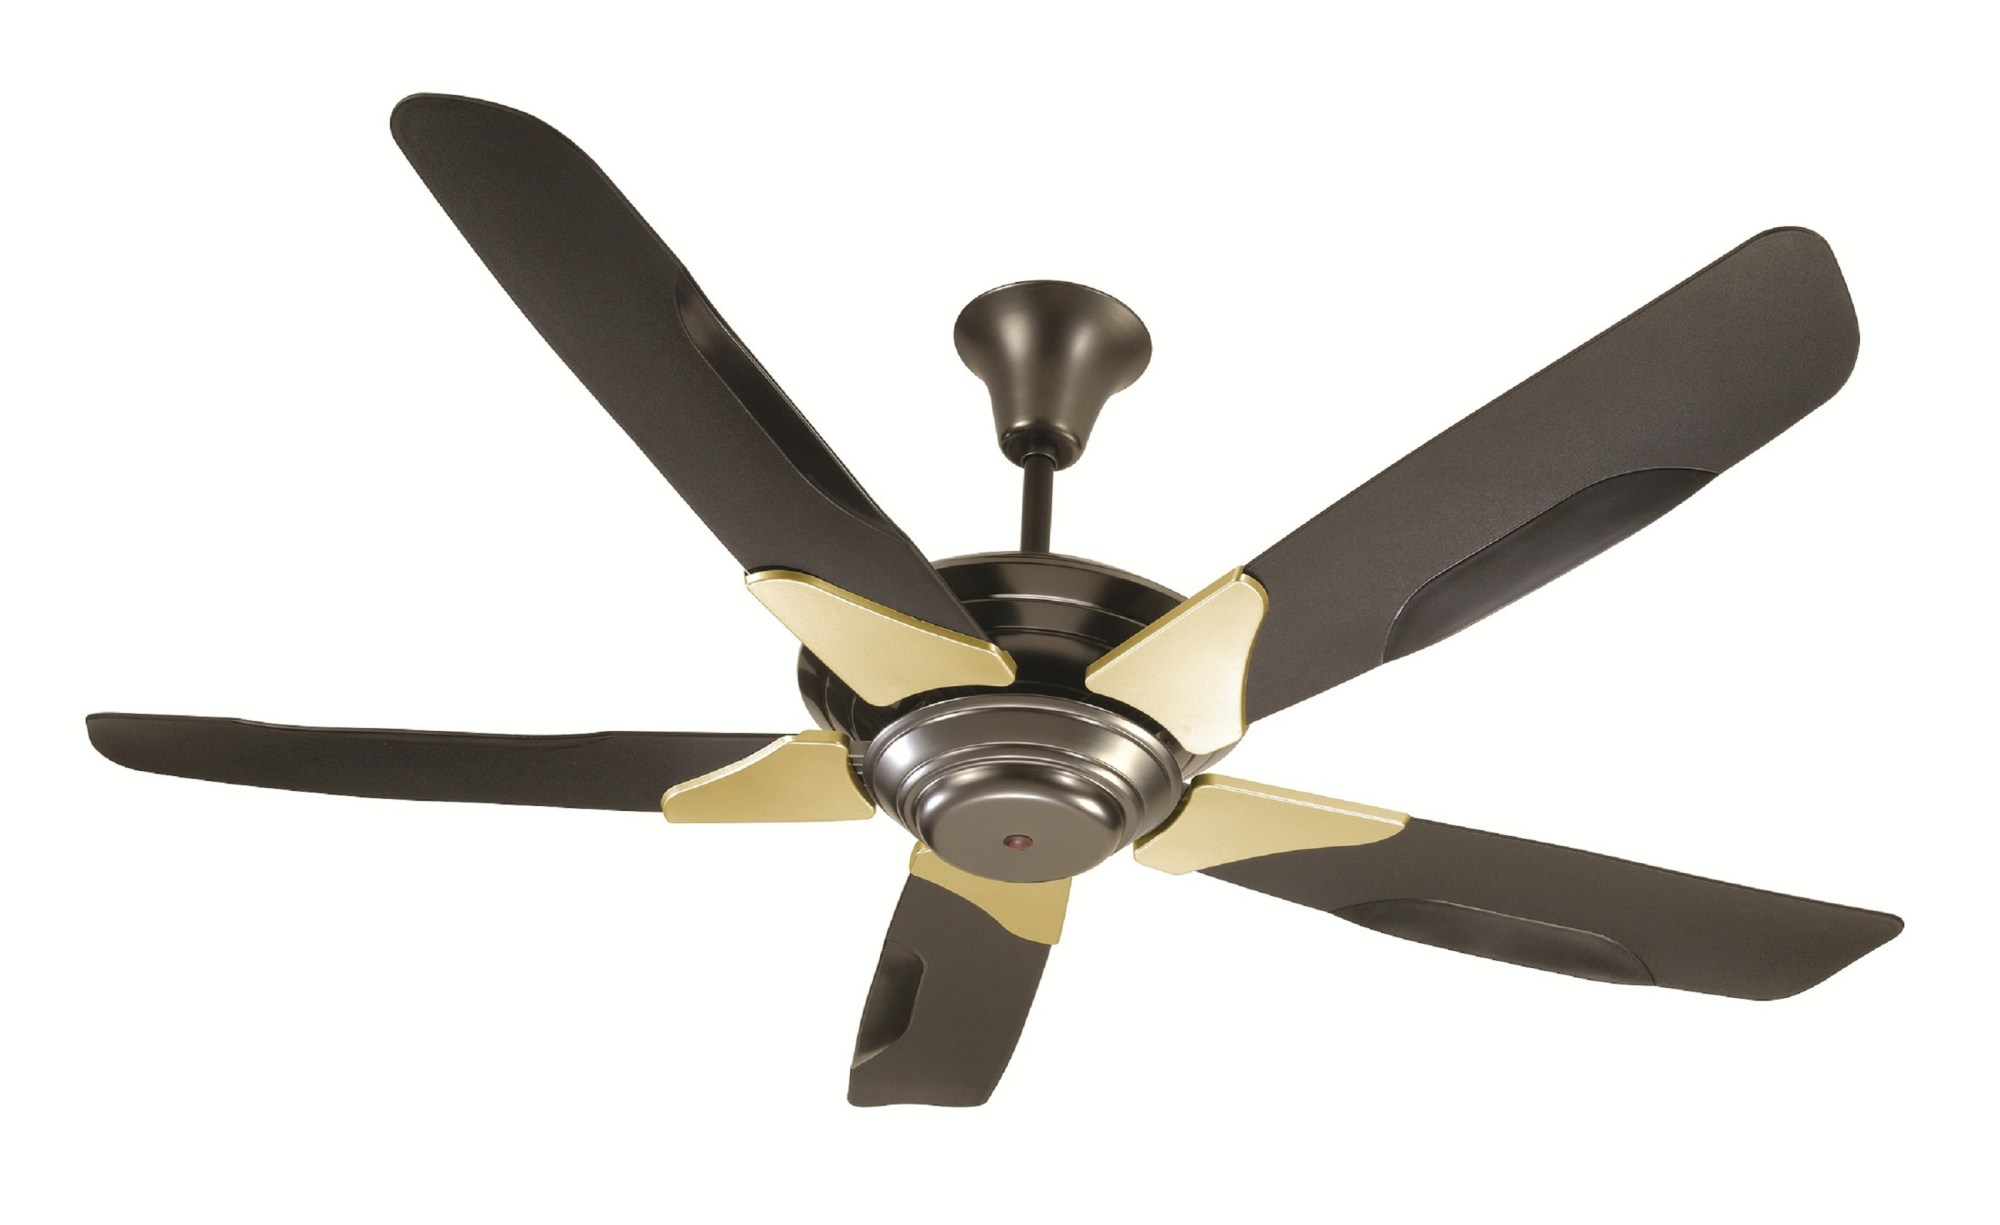 hight resolution of ceiling fan